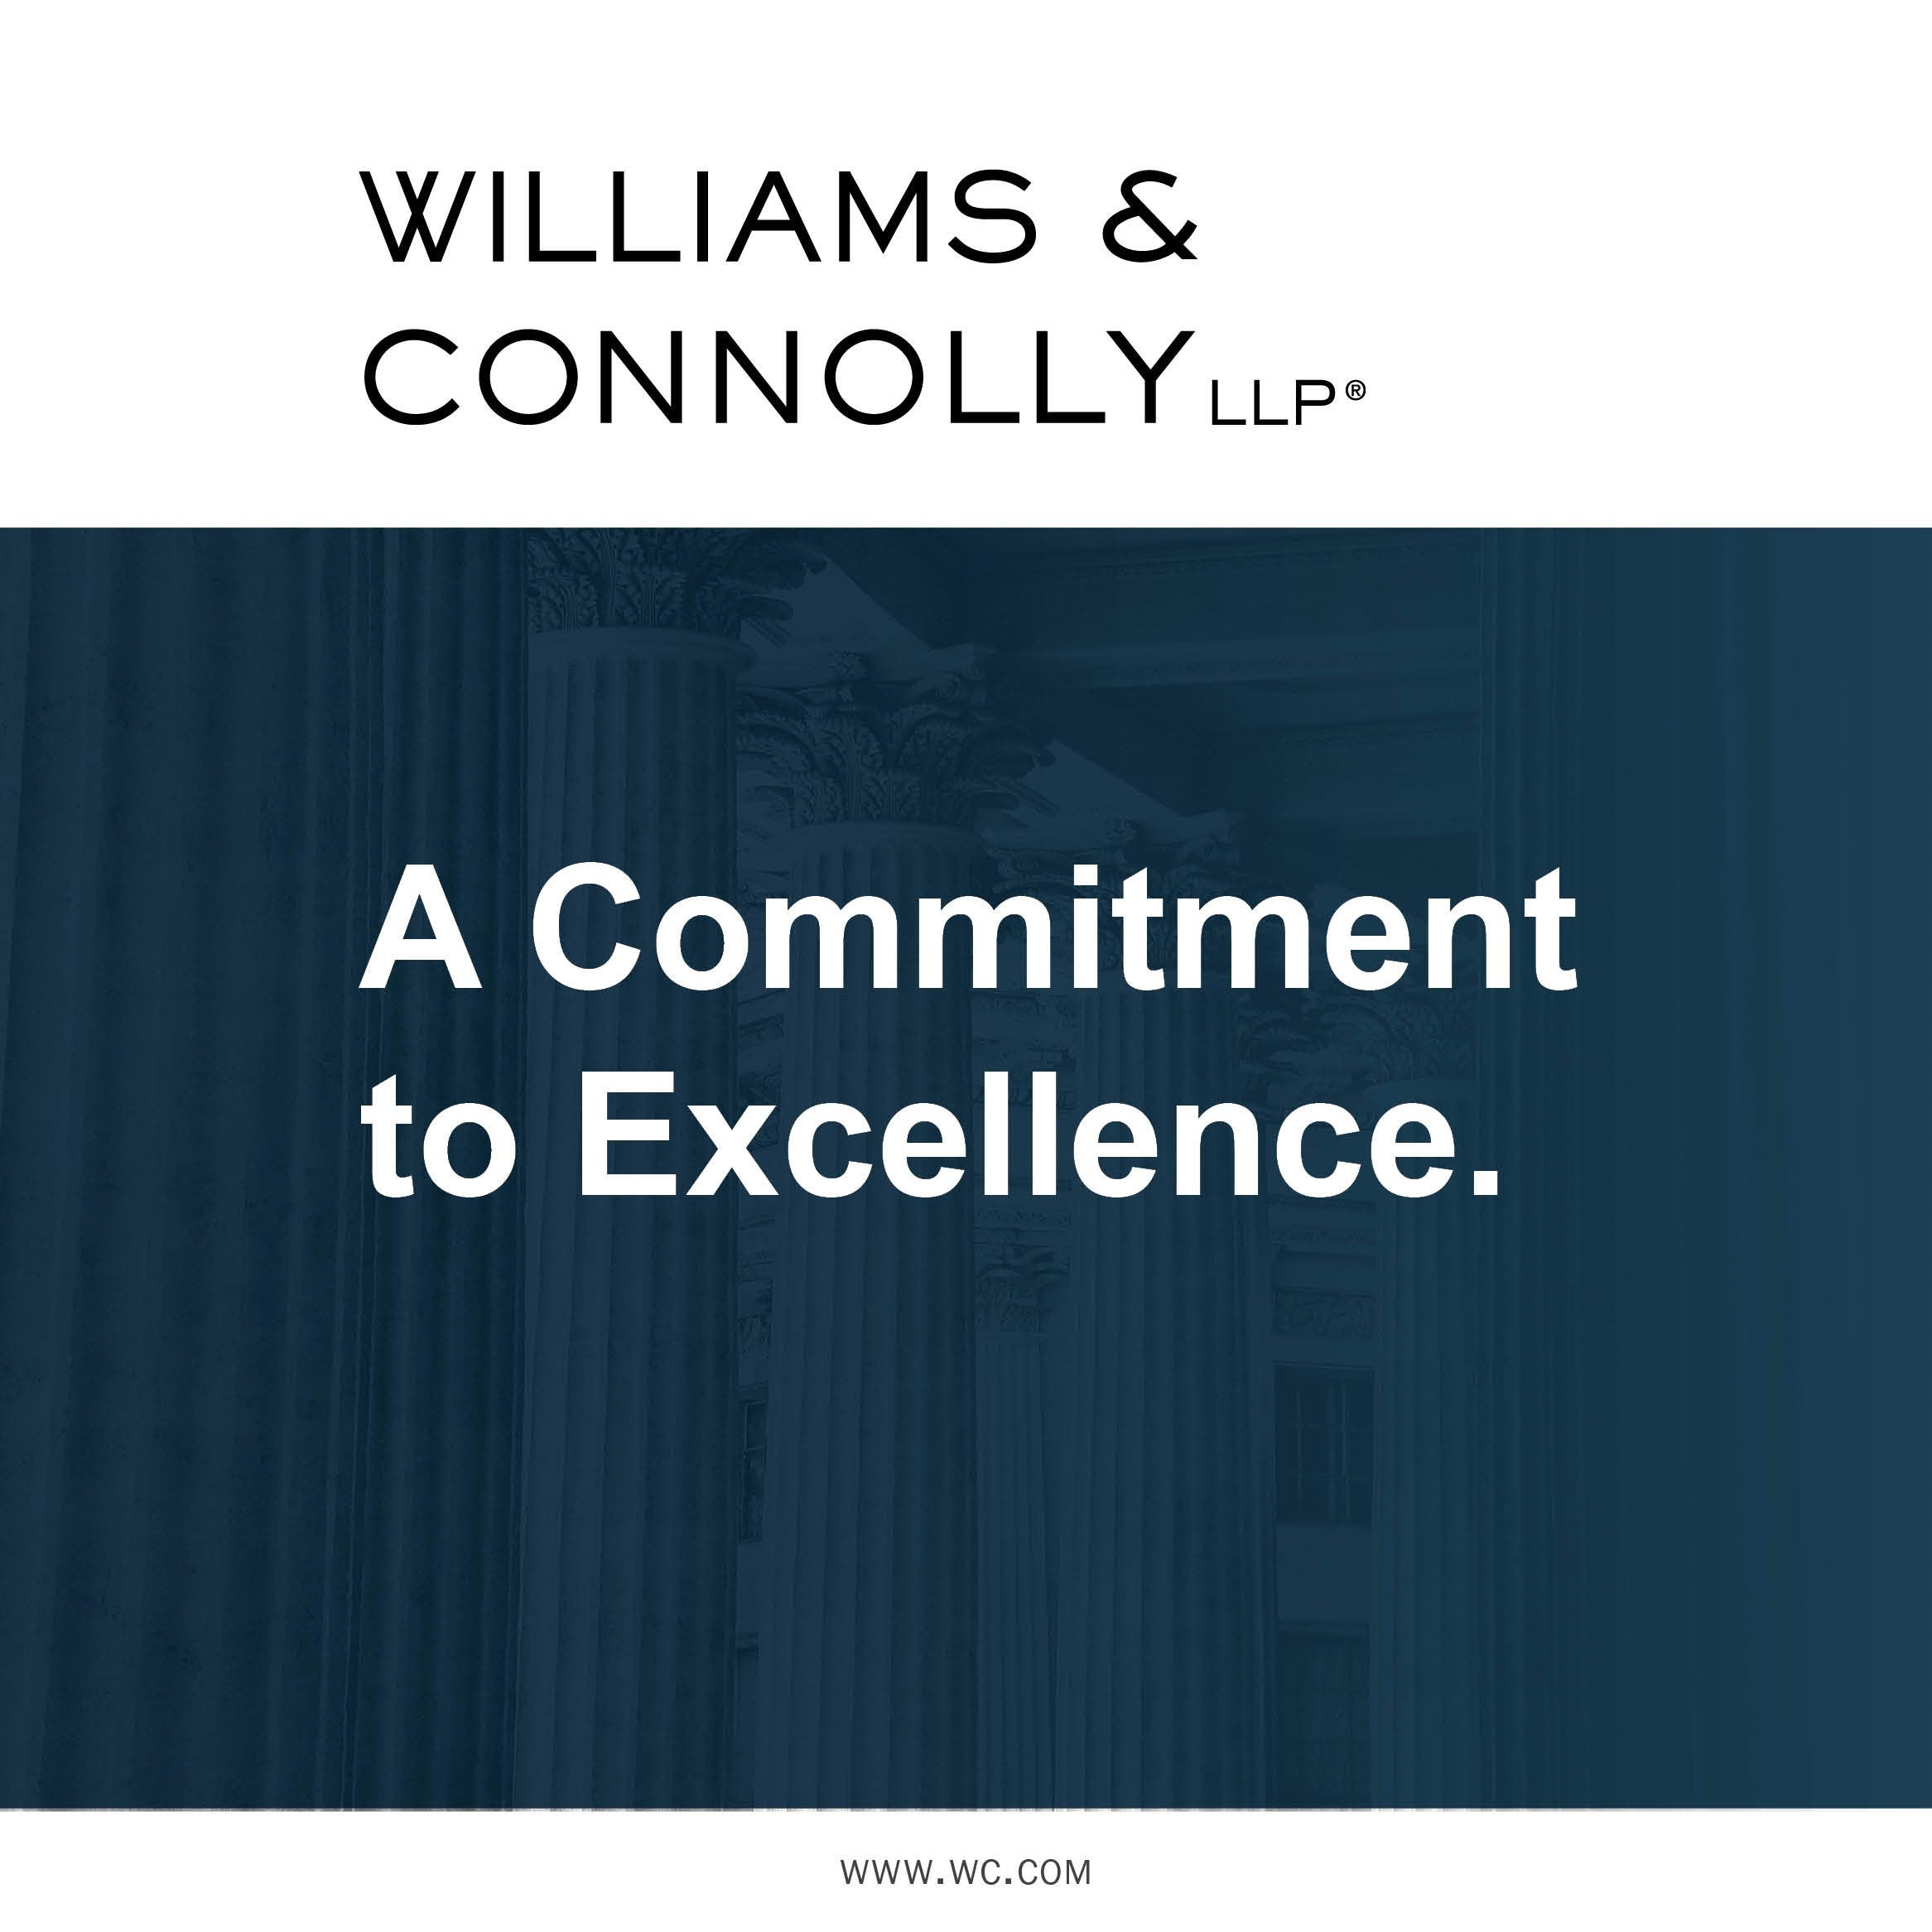 Williams & Connolly Ad